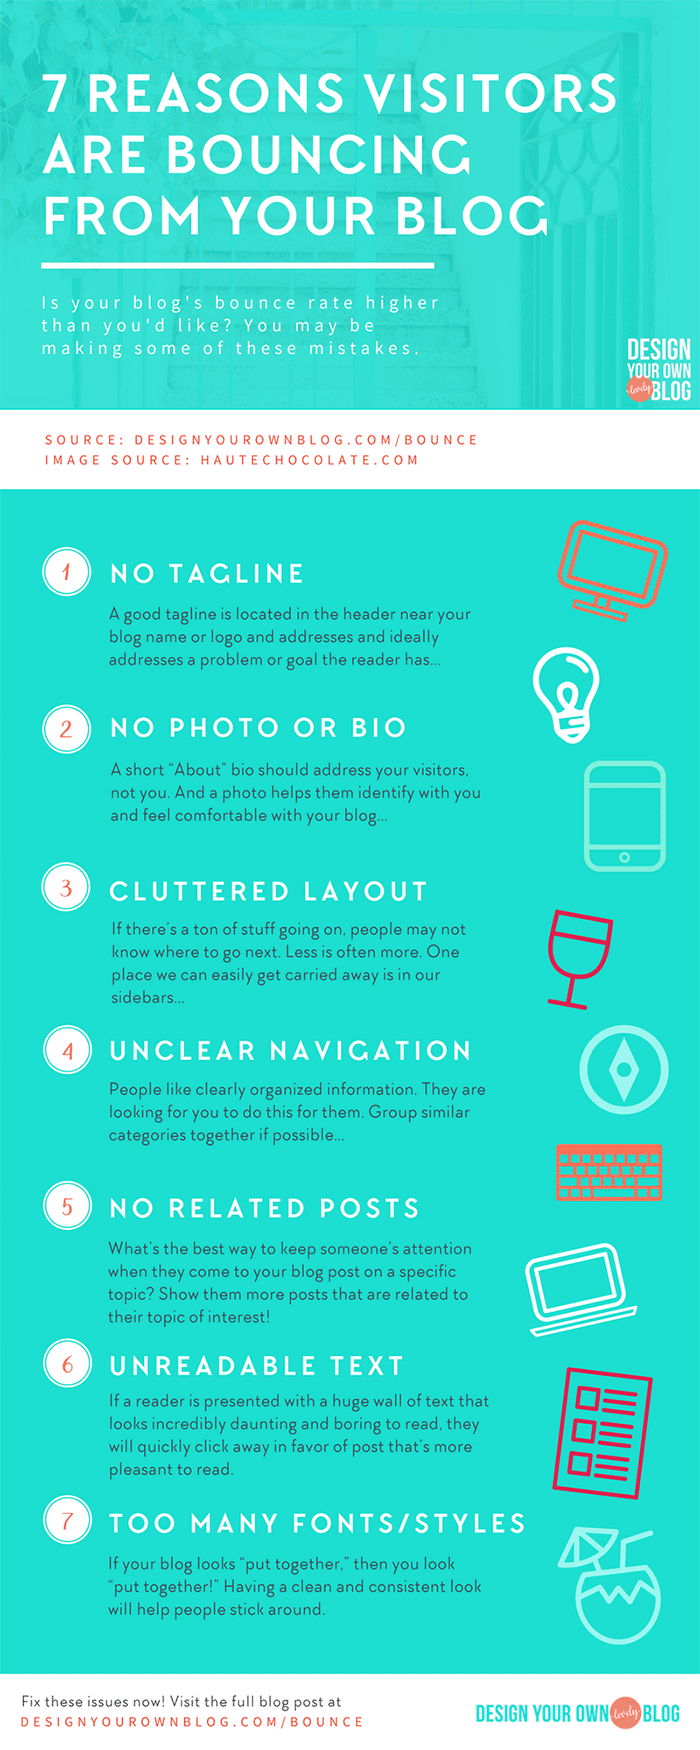 Does looking at your blog's bounce rate put you into a slight panic? Are you consistently putting out the best content you can and still seeing a high bounce rate? 7 Reasons Visitors are Bouncing from Your Blog (and how to fix it). Click through for ways to fix these issues on your blog!